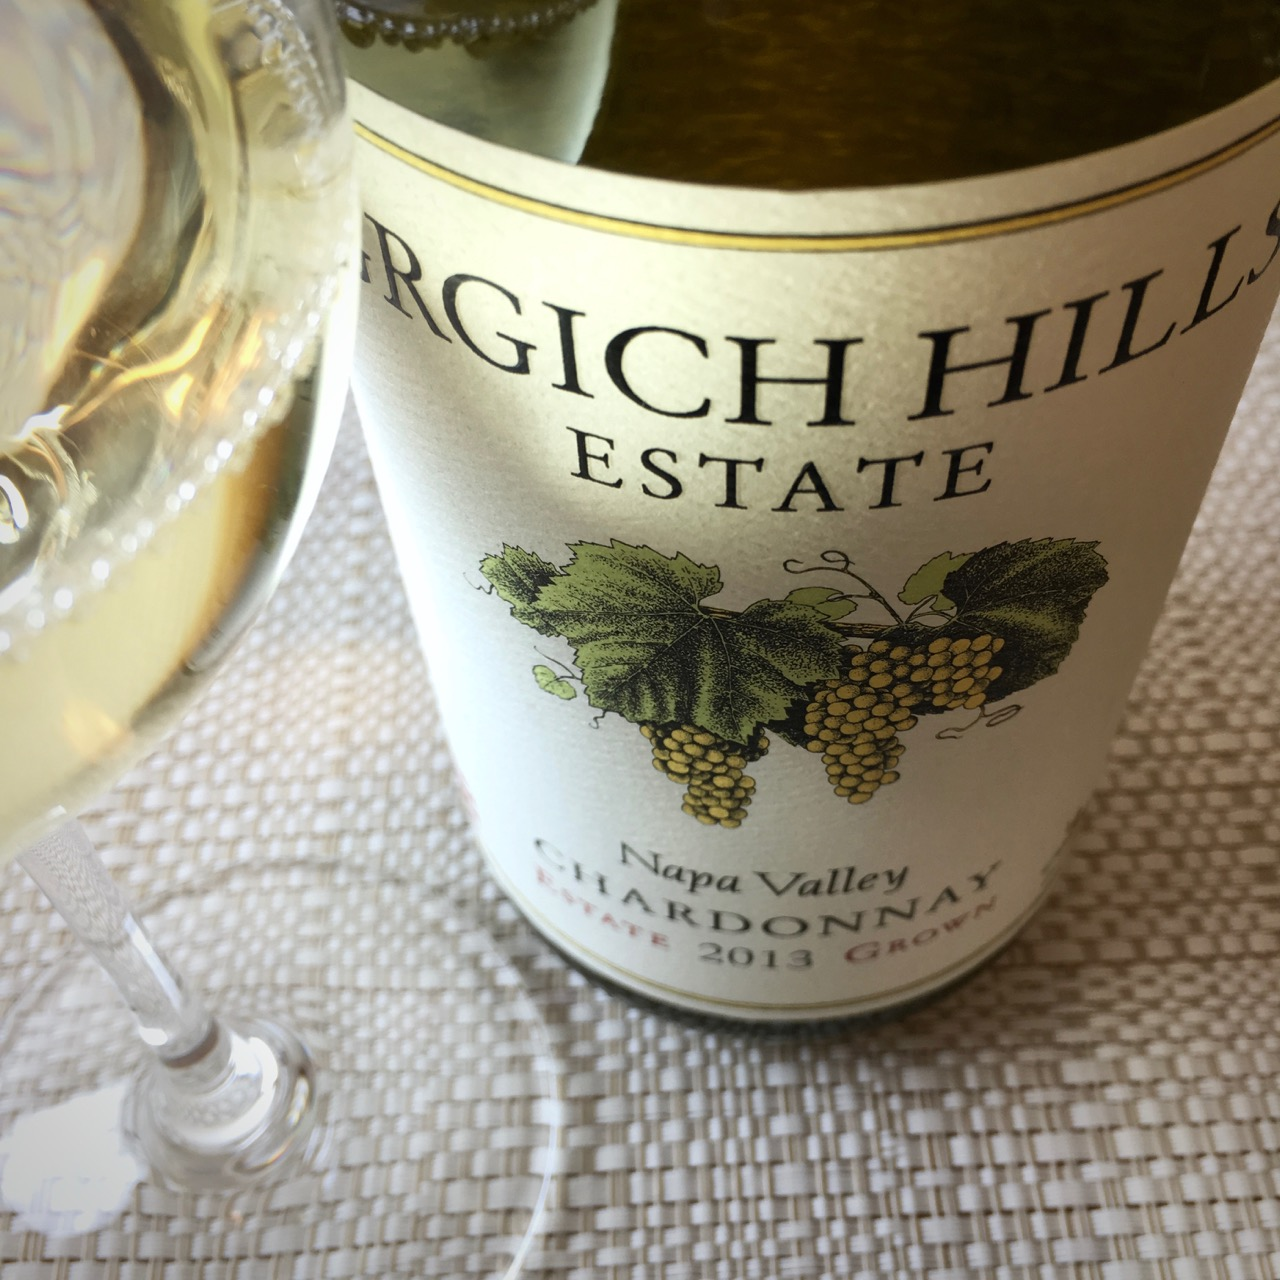 2013 Grgich Hills Estate Chardonnay Napa Valley